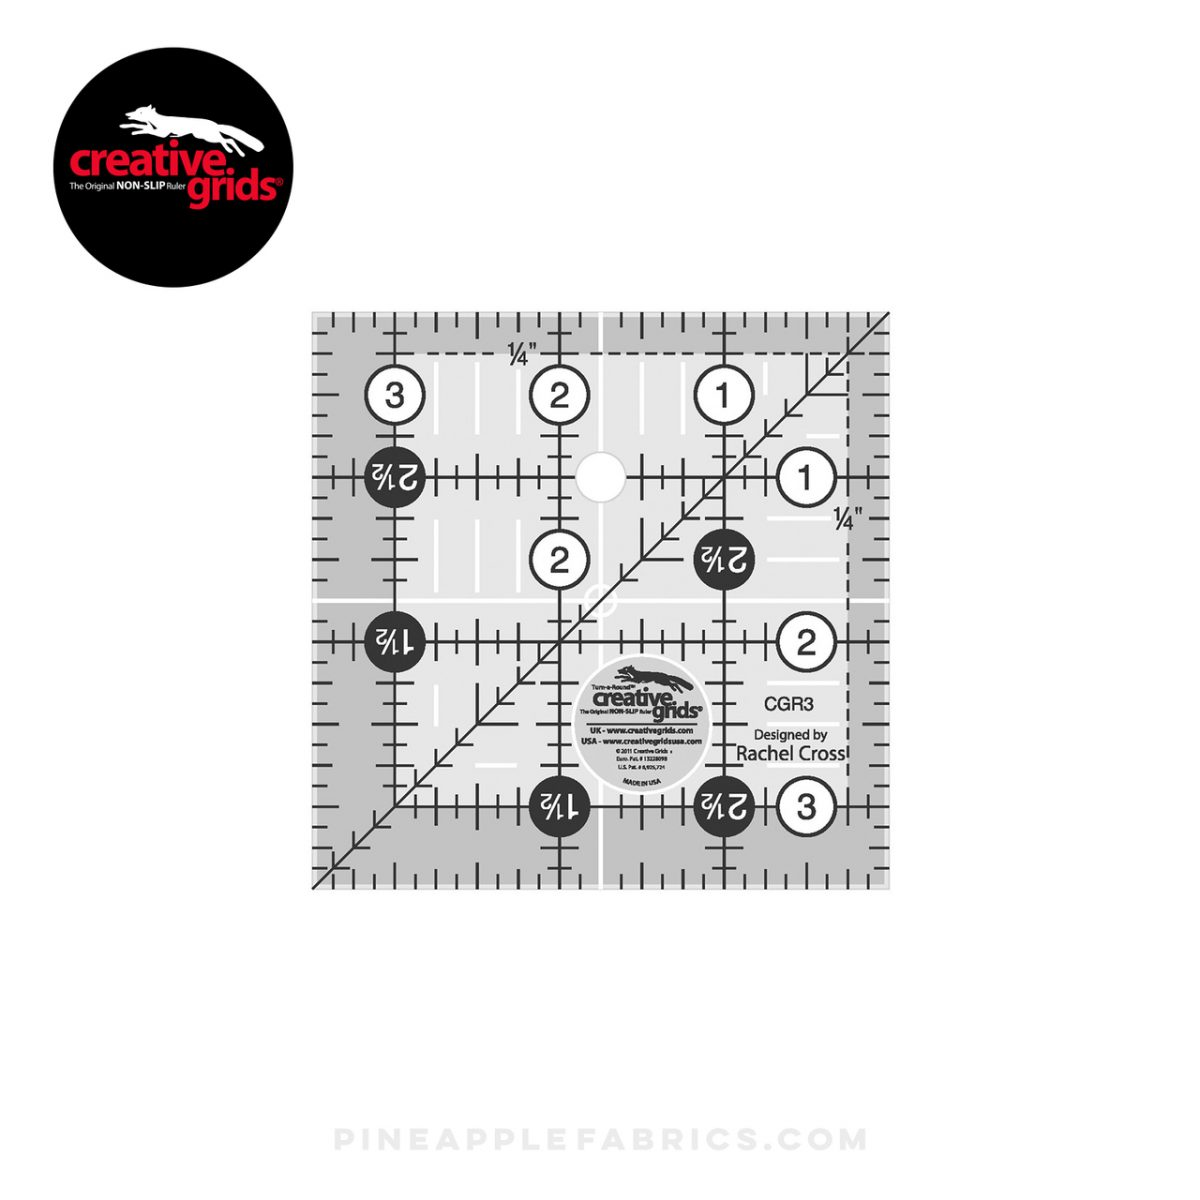 CGR3 - Creative Grids Quilt Ruler 3-1/2in Square